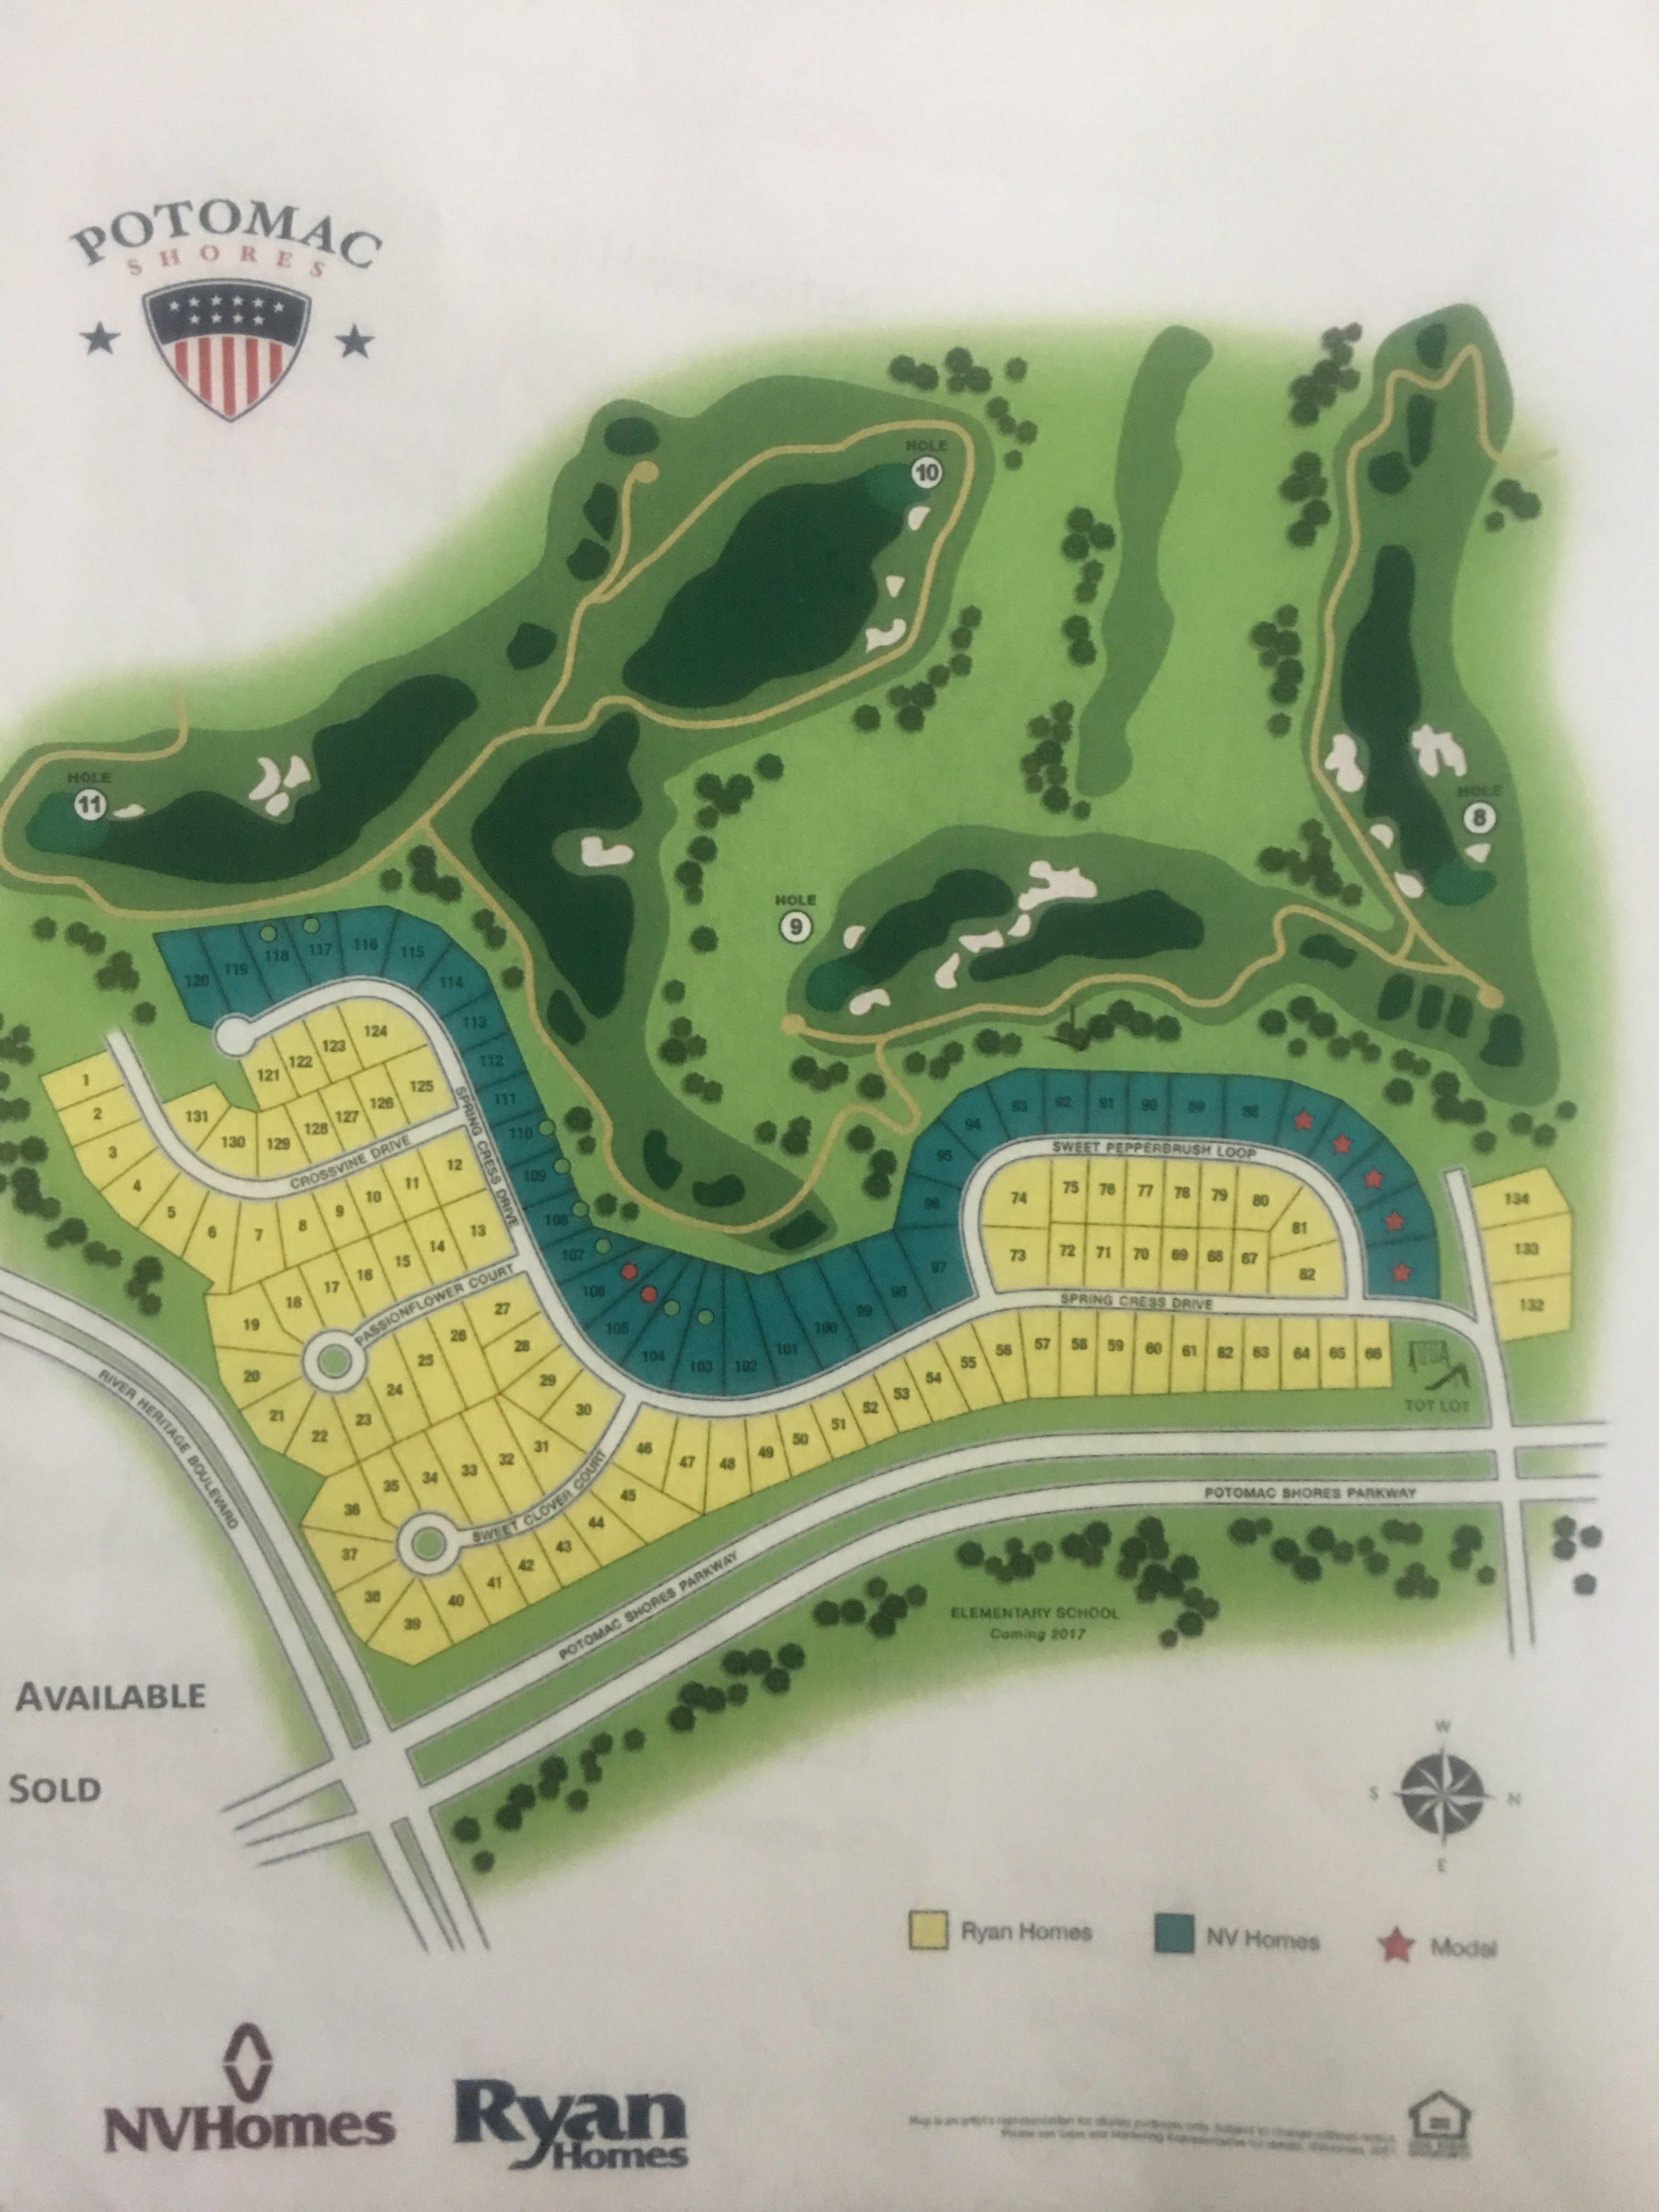 New homes for sale in Potomac Shores single family homes